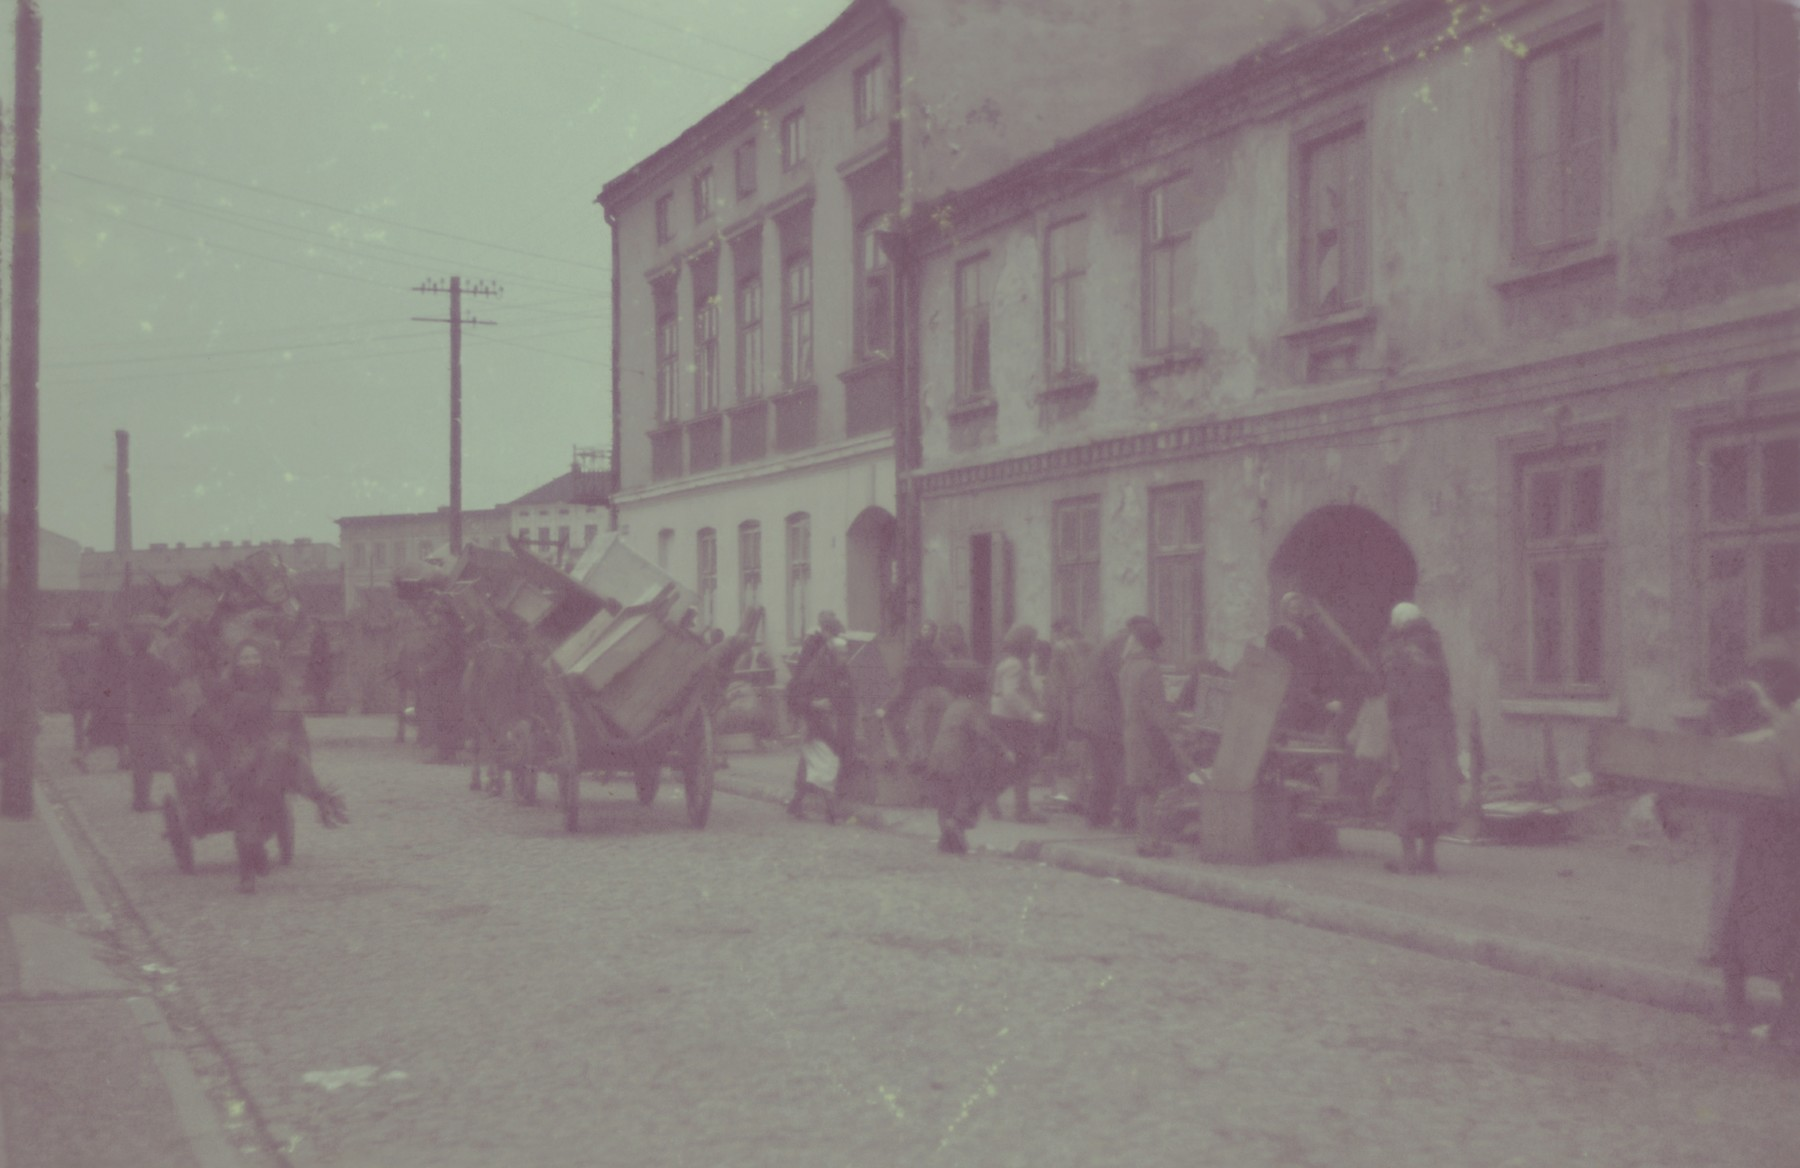 Horse-drawn wagons carry the belongings of Jews moving into the Lodz ghetto.